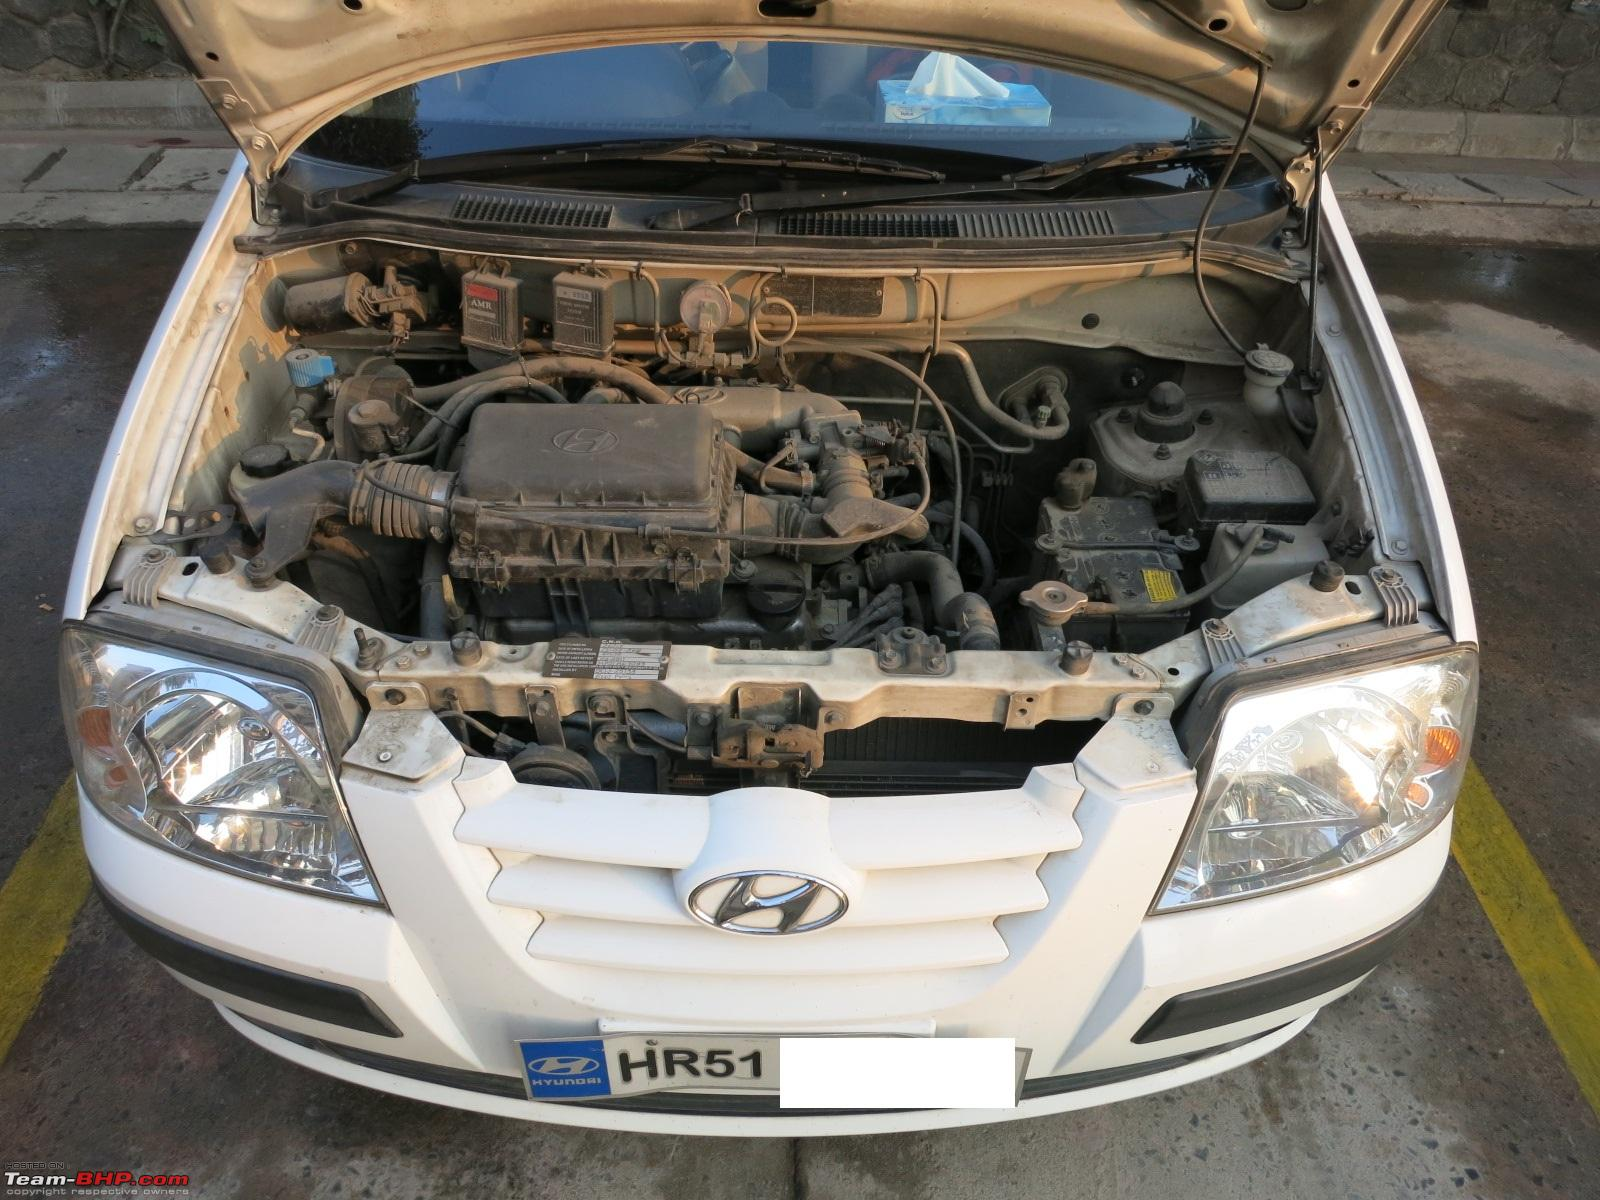 Cheapest Car On Gas >> Sensible Hyundai Santro CNGified: 60k Kms & counting - Team-BHP